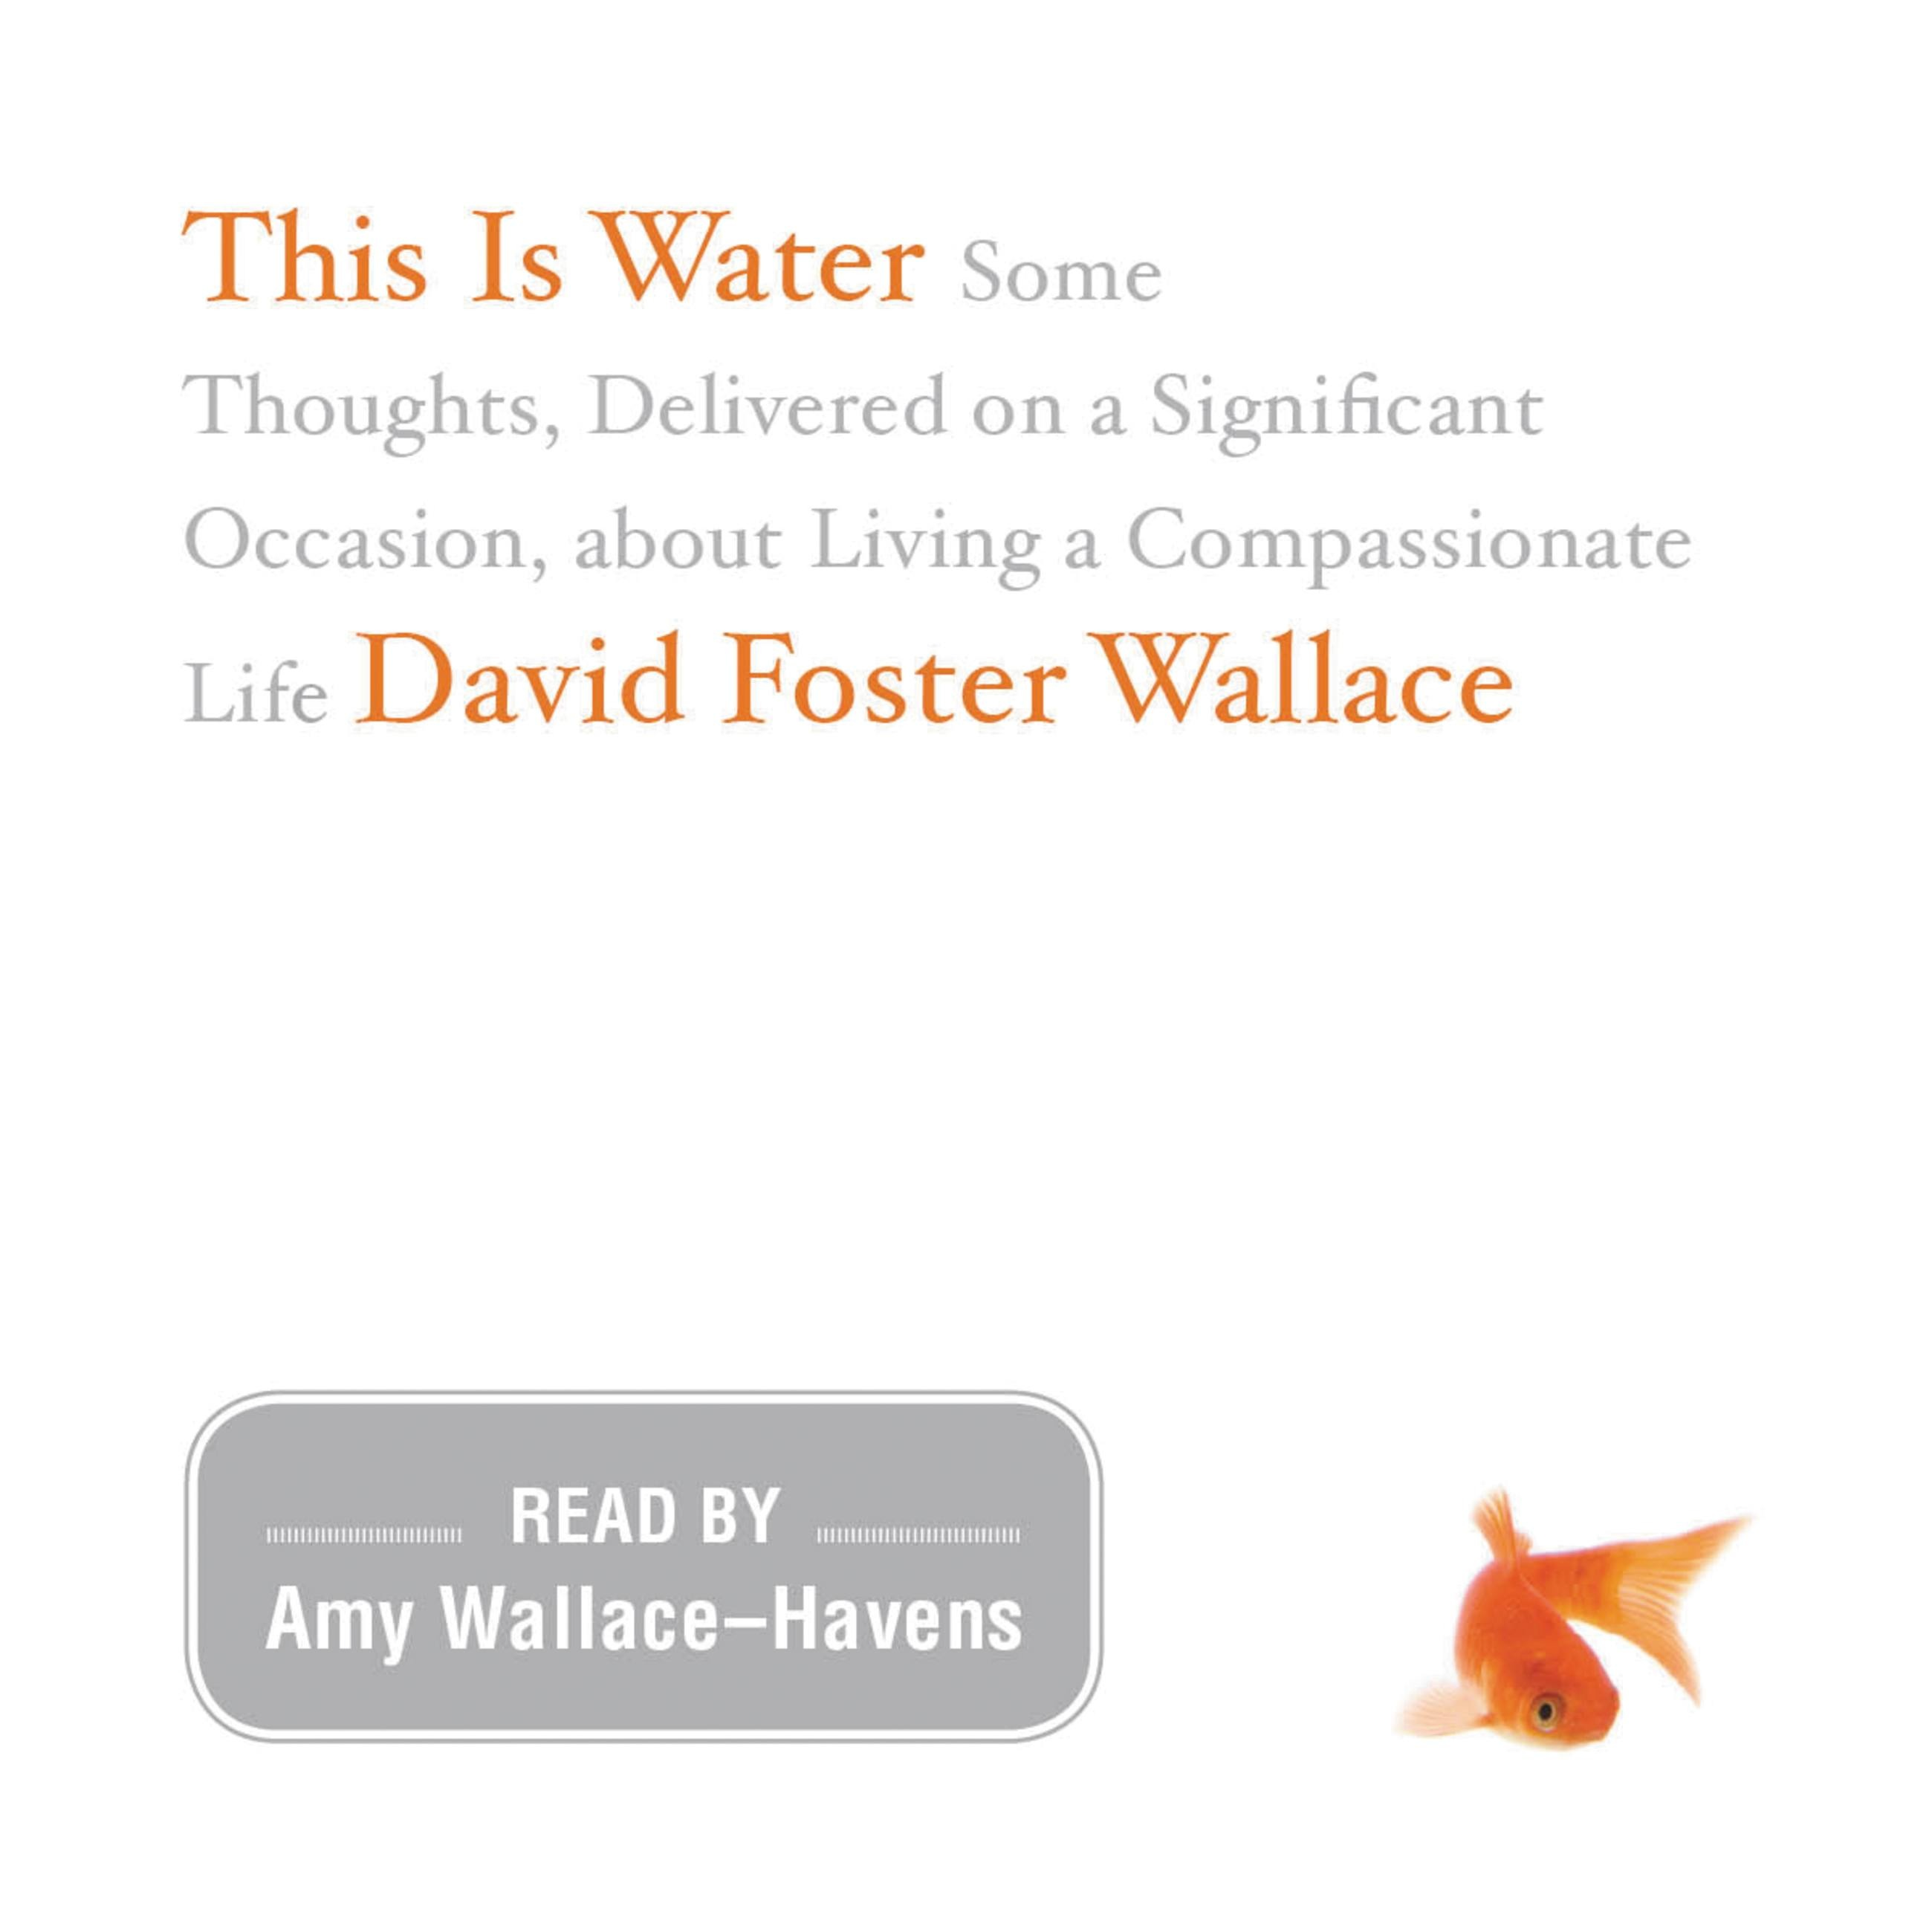 david foster wallace hachette book group this is water the original david foster wallace recording